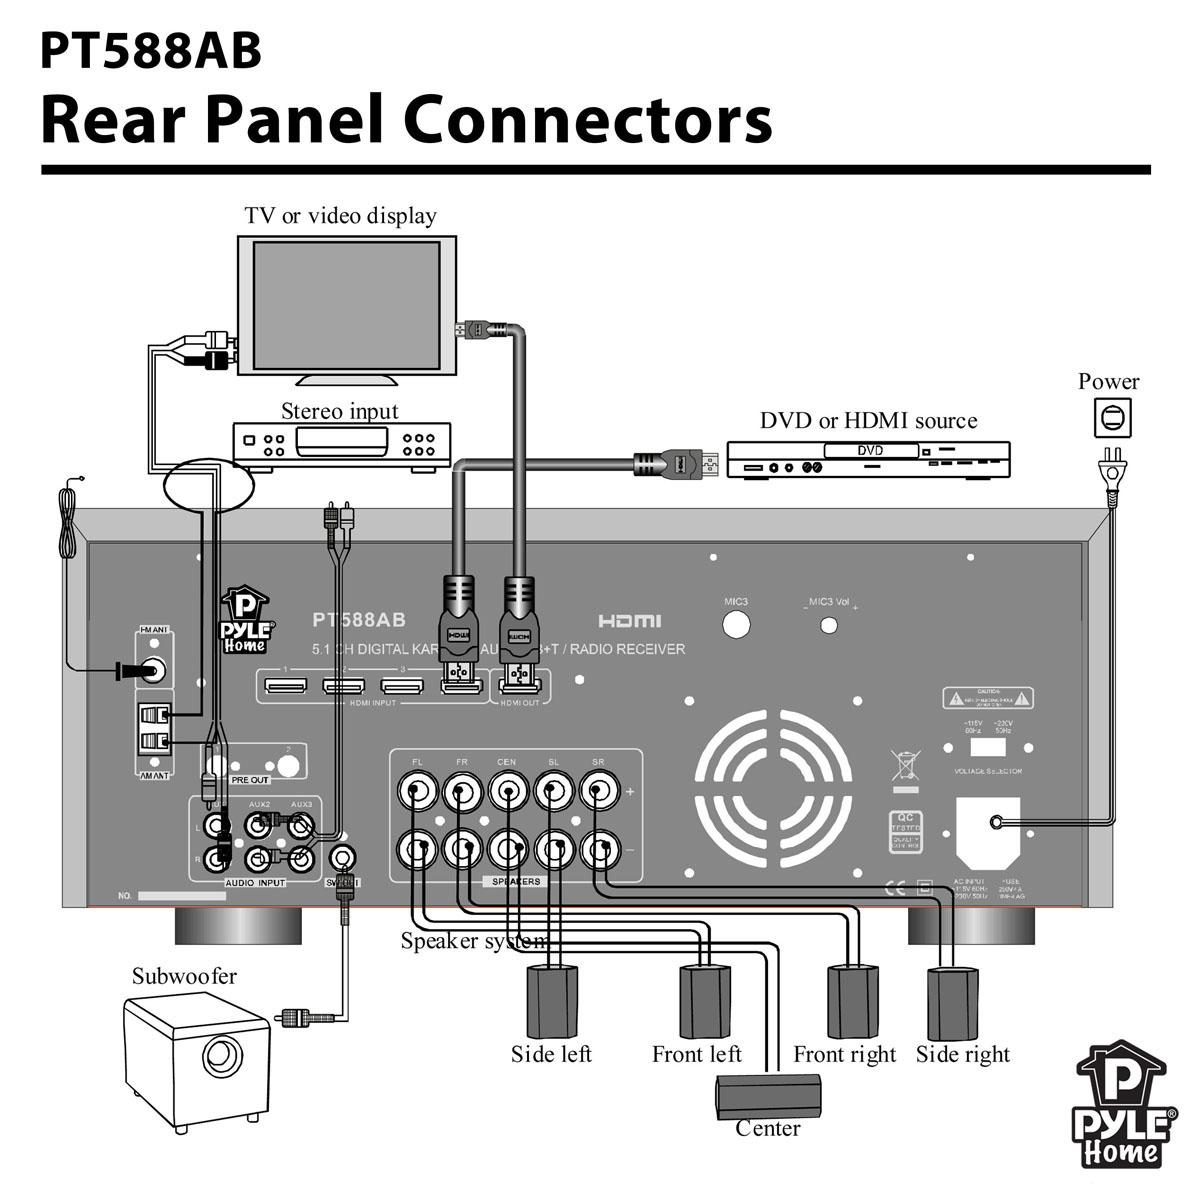 630bb426 e215 45b9 961c 1b9576d4c91e._CB301889668_ amazon com pyle pt588ab 5 1 channel home theater av receiver, bt Speaker Wiring Diagram at n-0.co